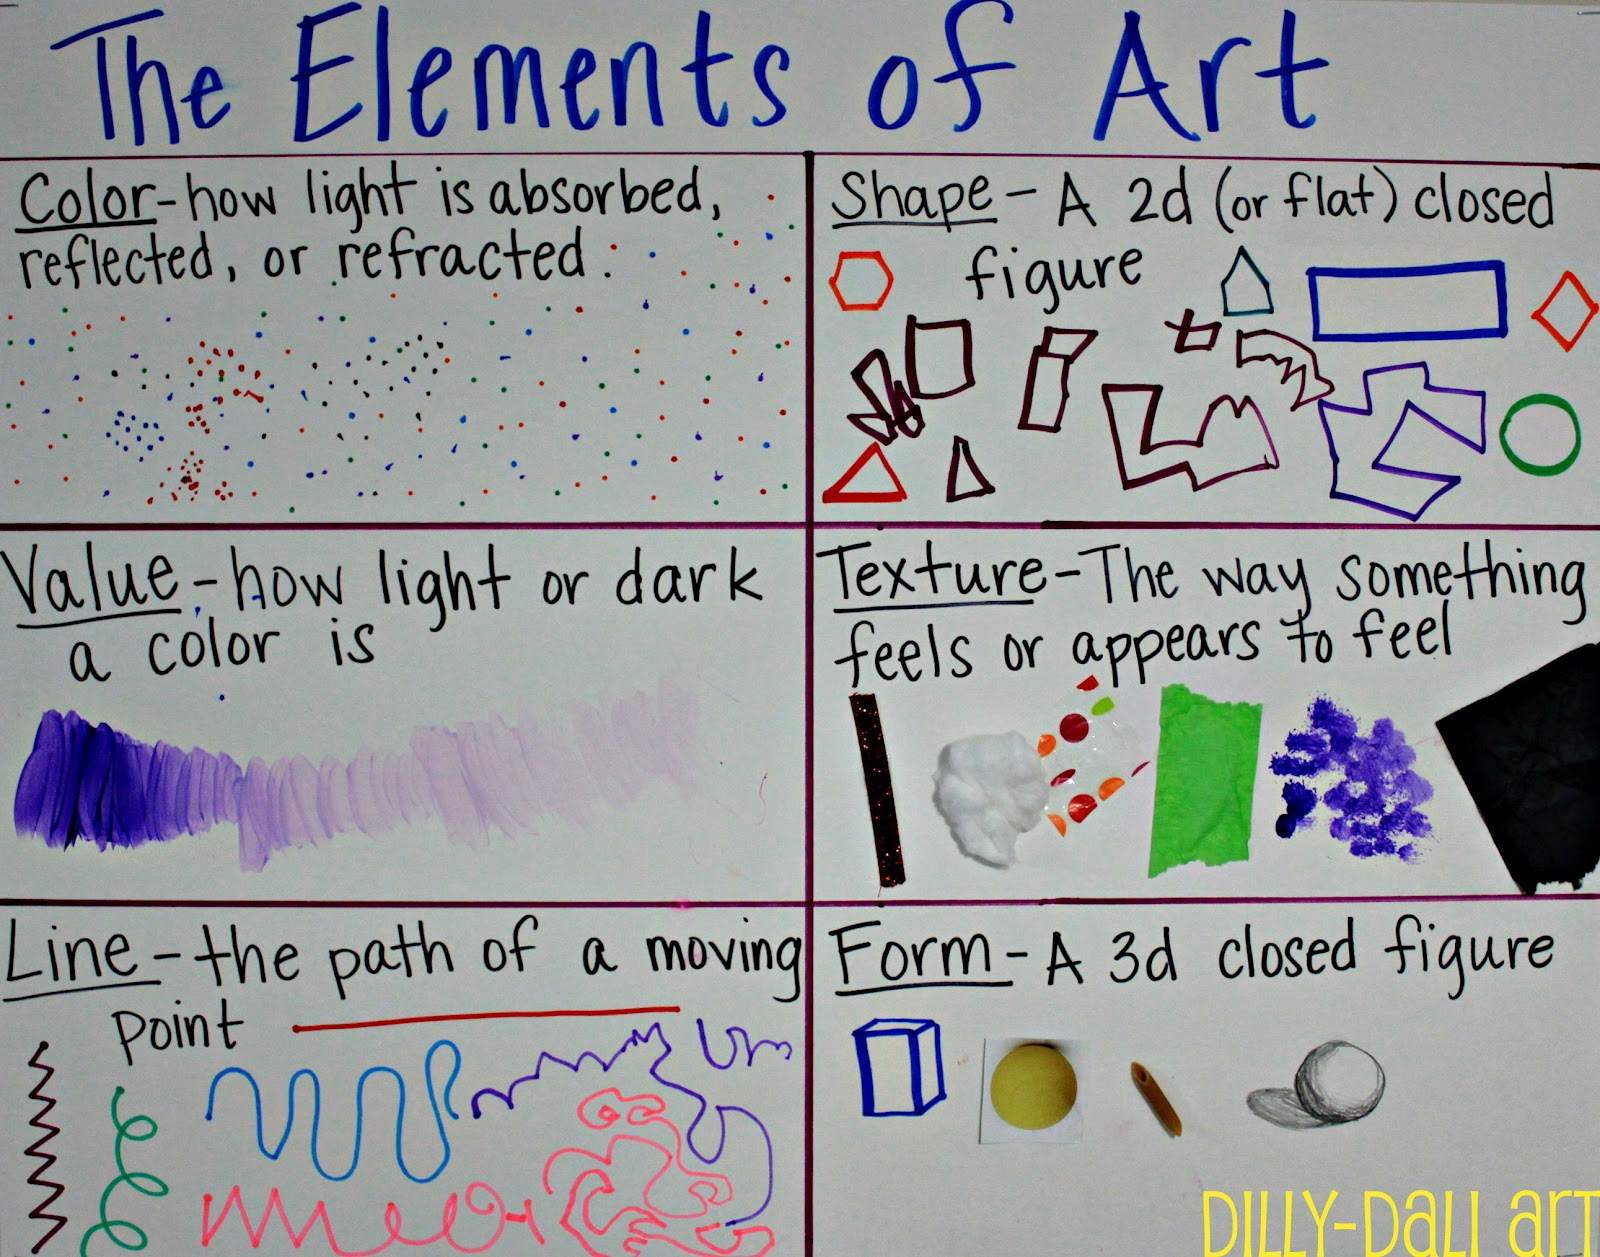 3 Elements Of Art : Dilly dali art elements of poster